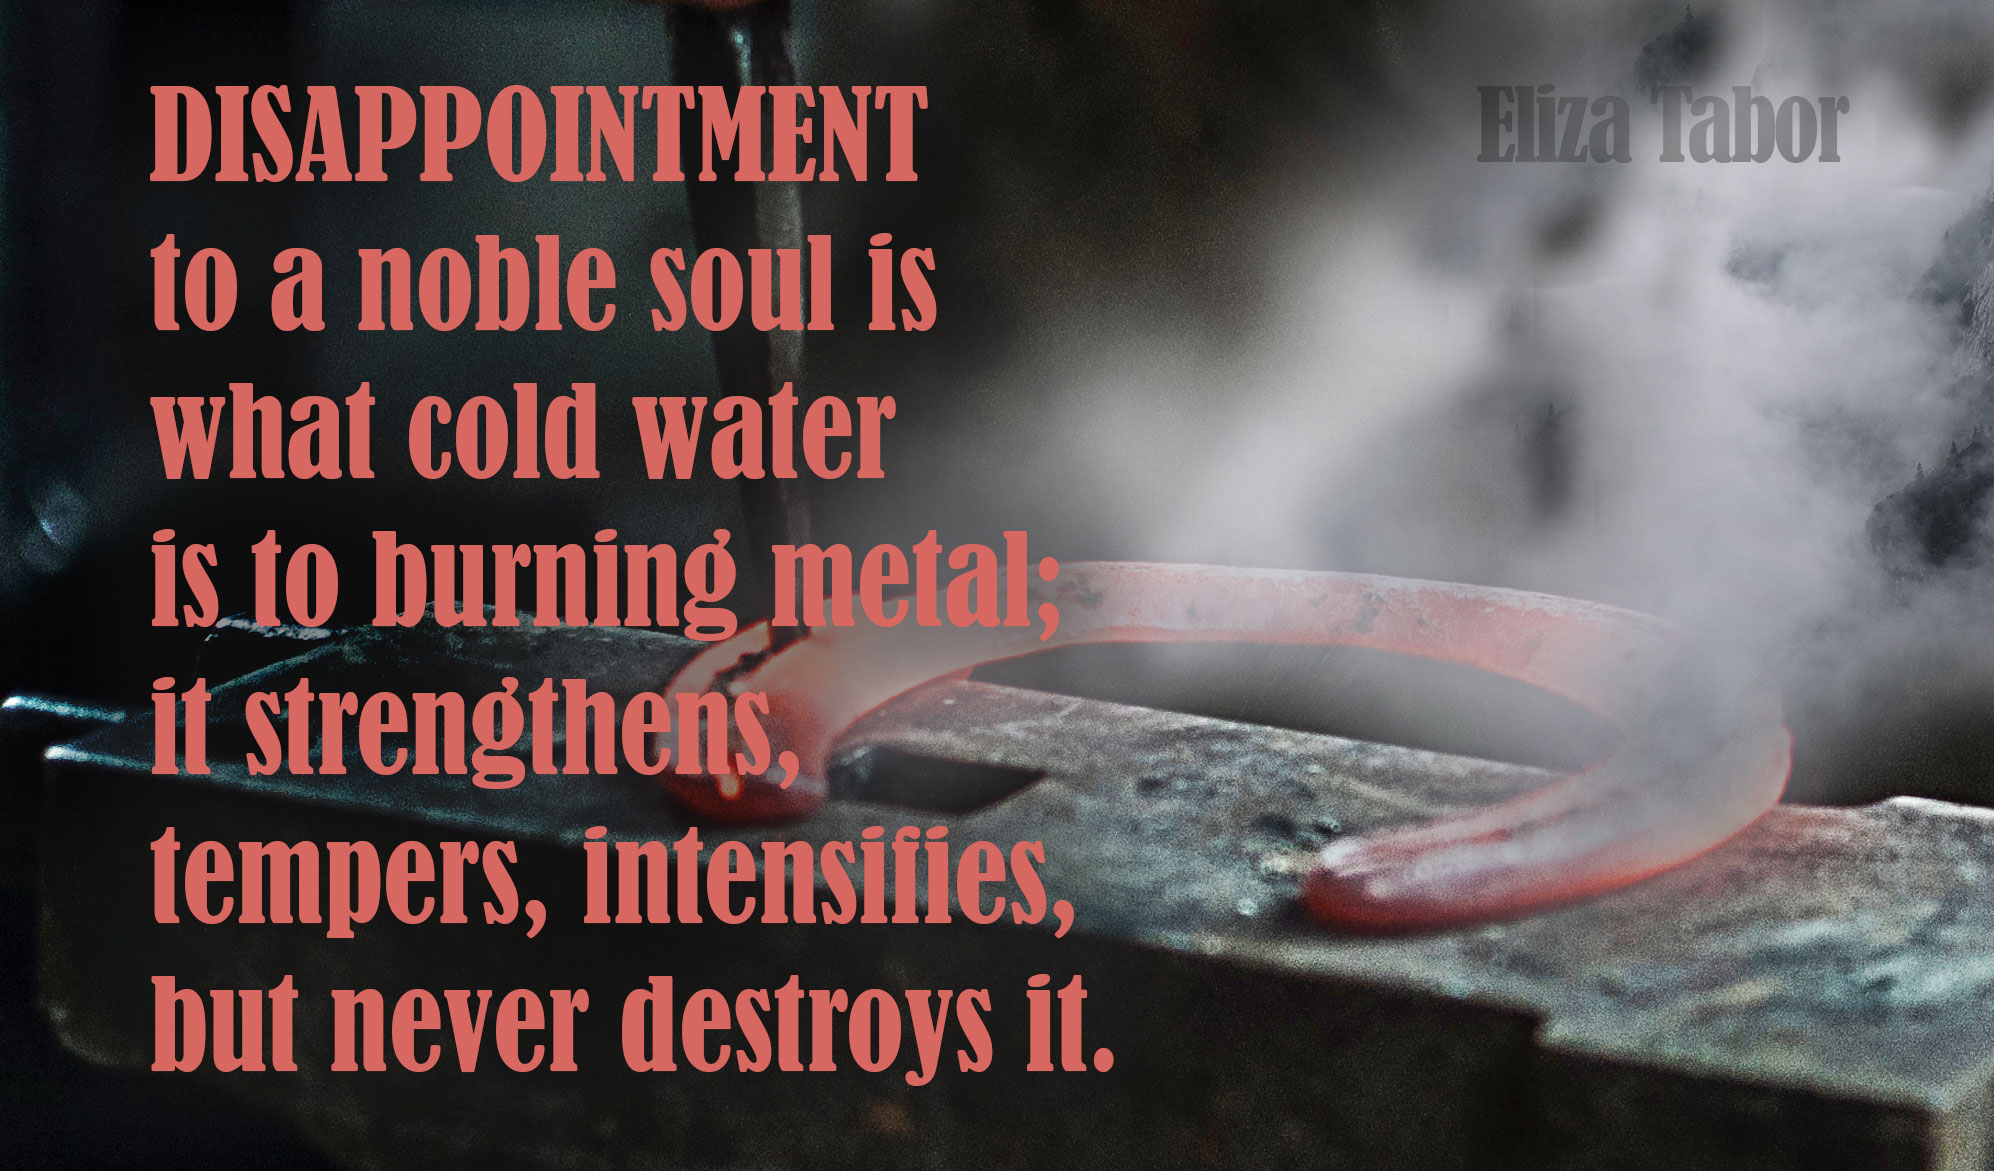 daily inspirational quote image: a incandenscent horse shoe is forged among smoke